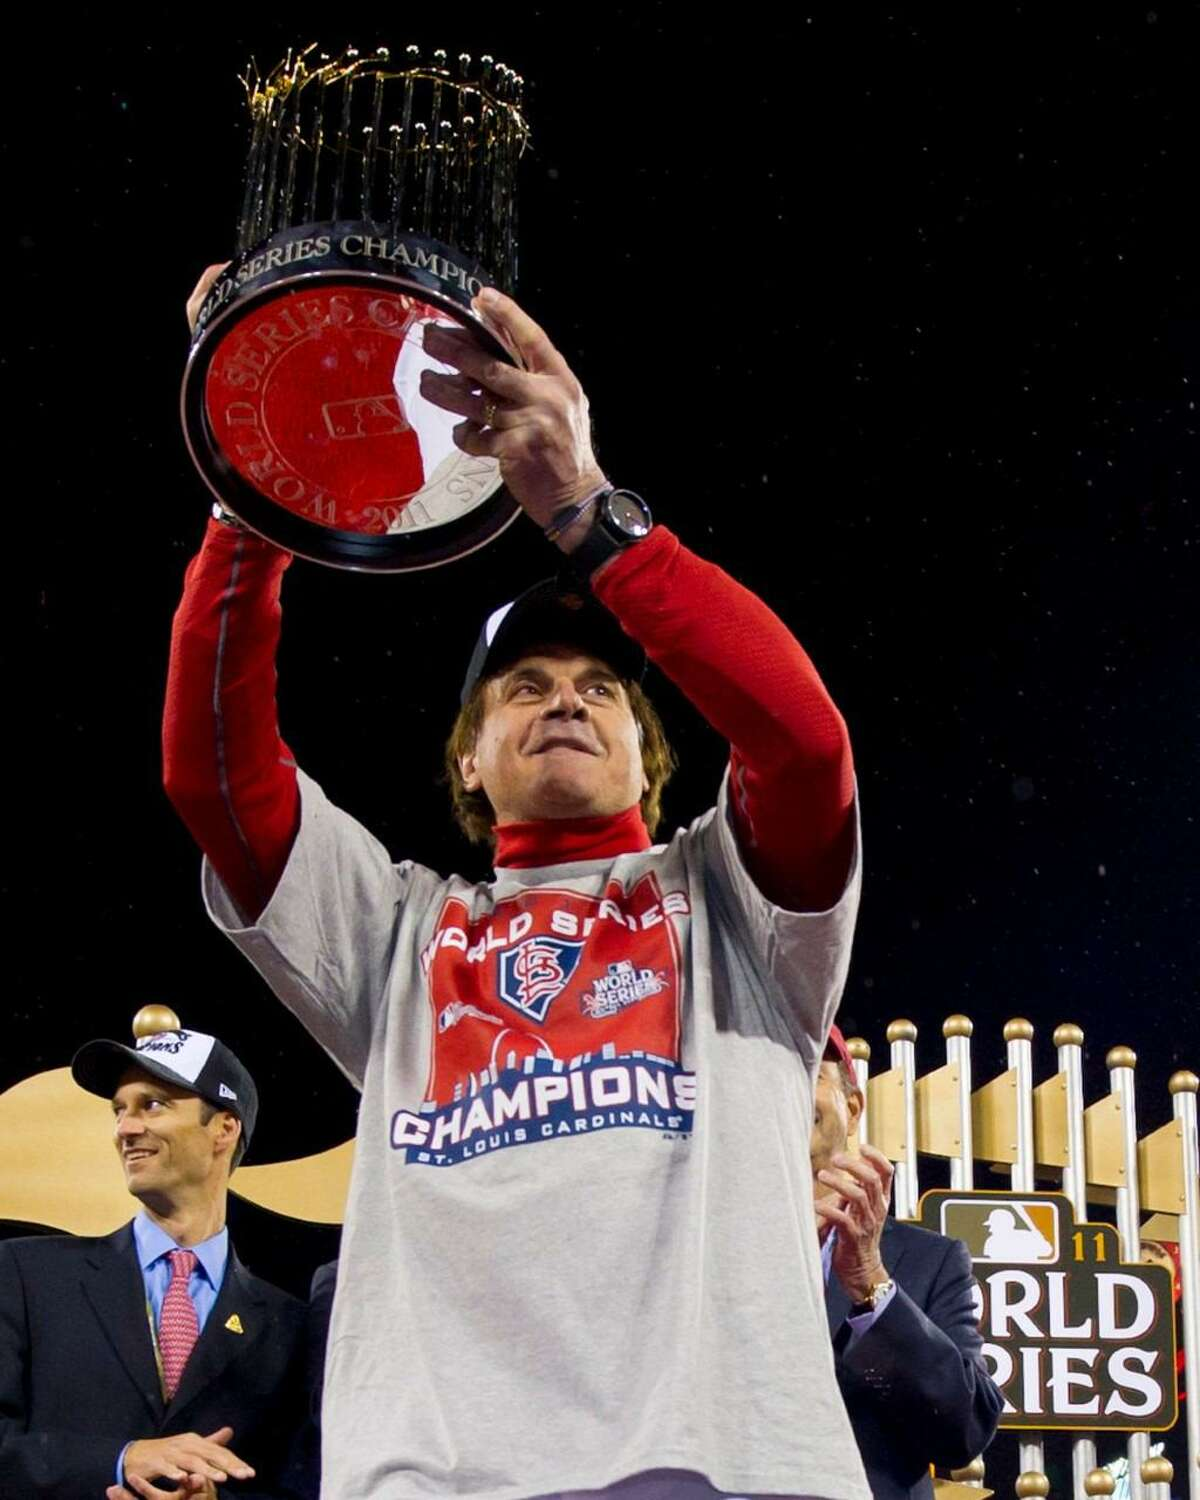 The Westport Library is presenting a conversation with Major League Baseball Hall of Famer Tony La Russa on Tuesday, Jan. 26, from 7 to 8:30 p.m., in a virtual program titled: